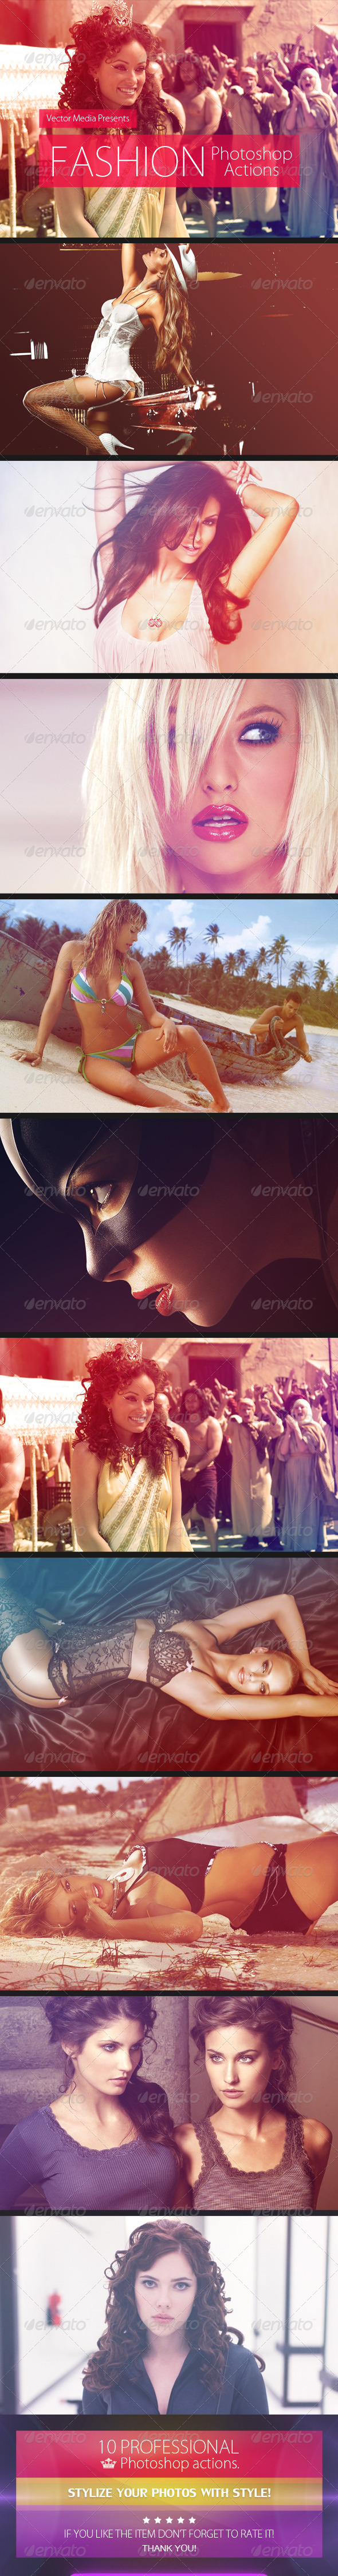 GraphicRiver Fashion Photoshop Actions 4566993